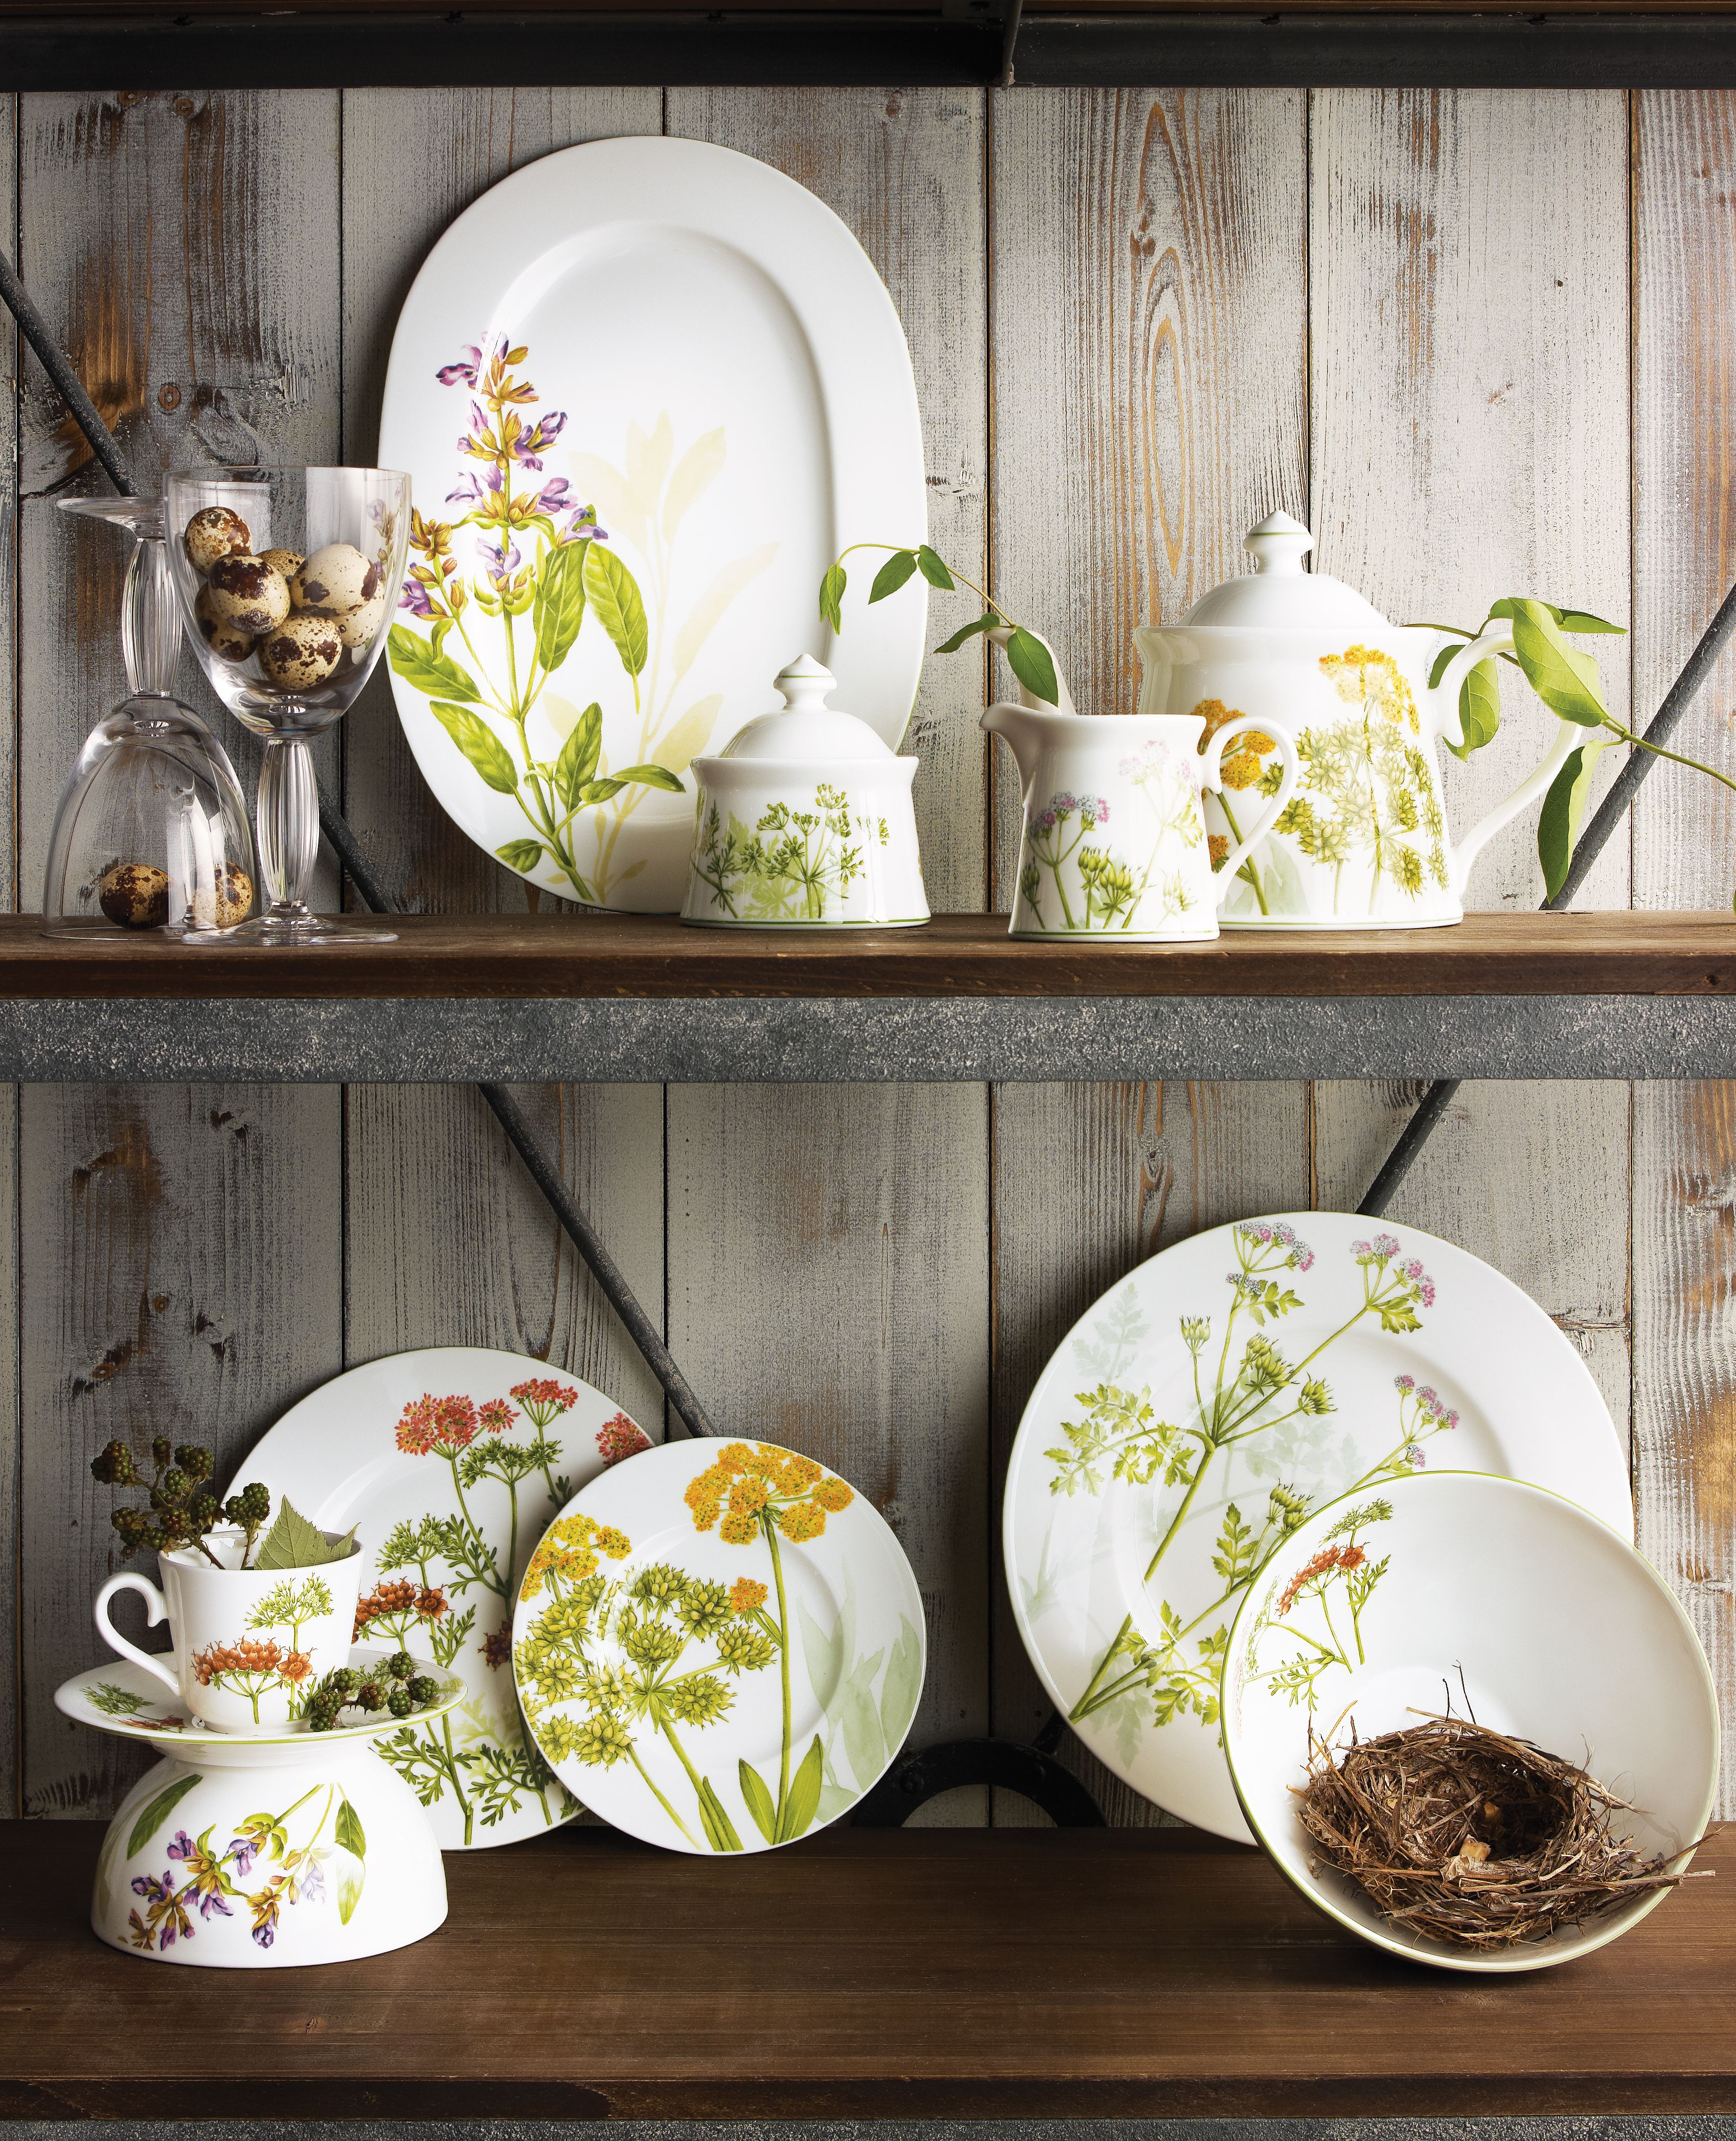 17 Best images about villeroy   boch on Pinterest   Roasted figs  True  beauty and Nova. 17 Best images about villeroy   boch on Pinterest   Roasted figs